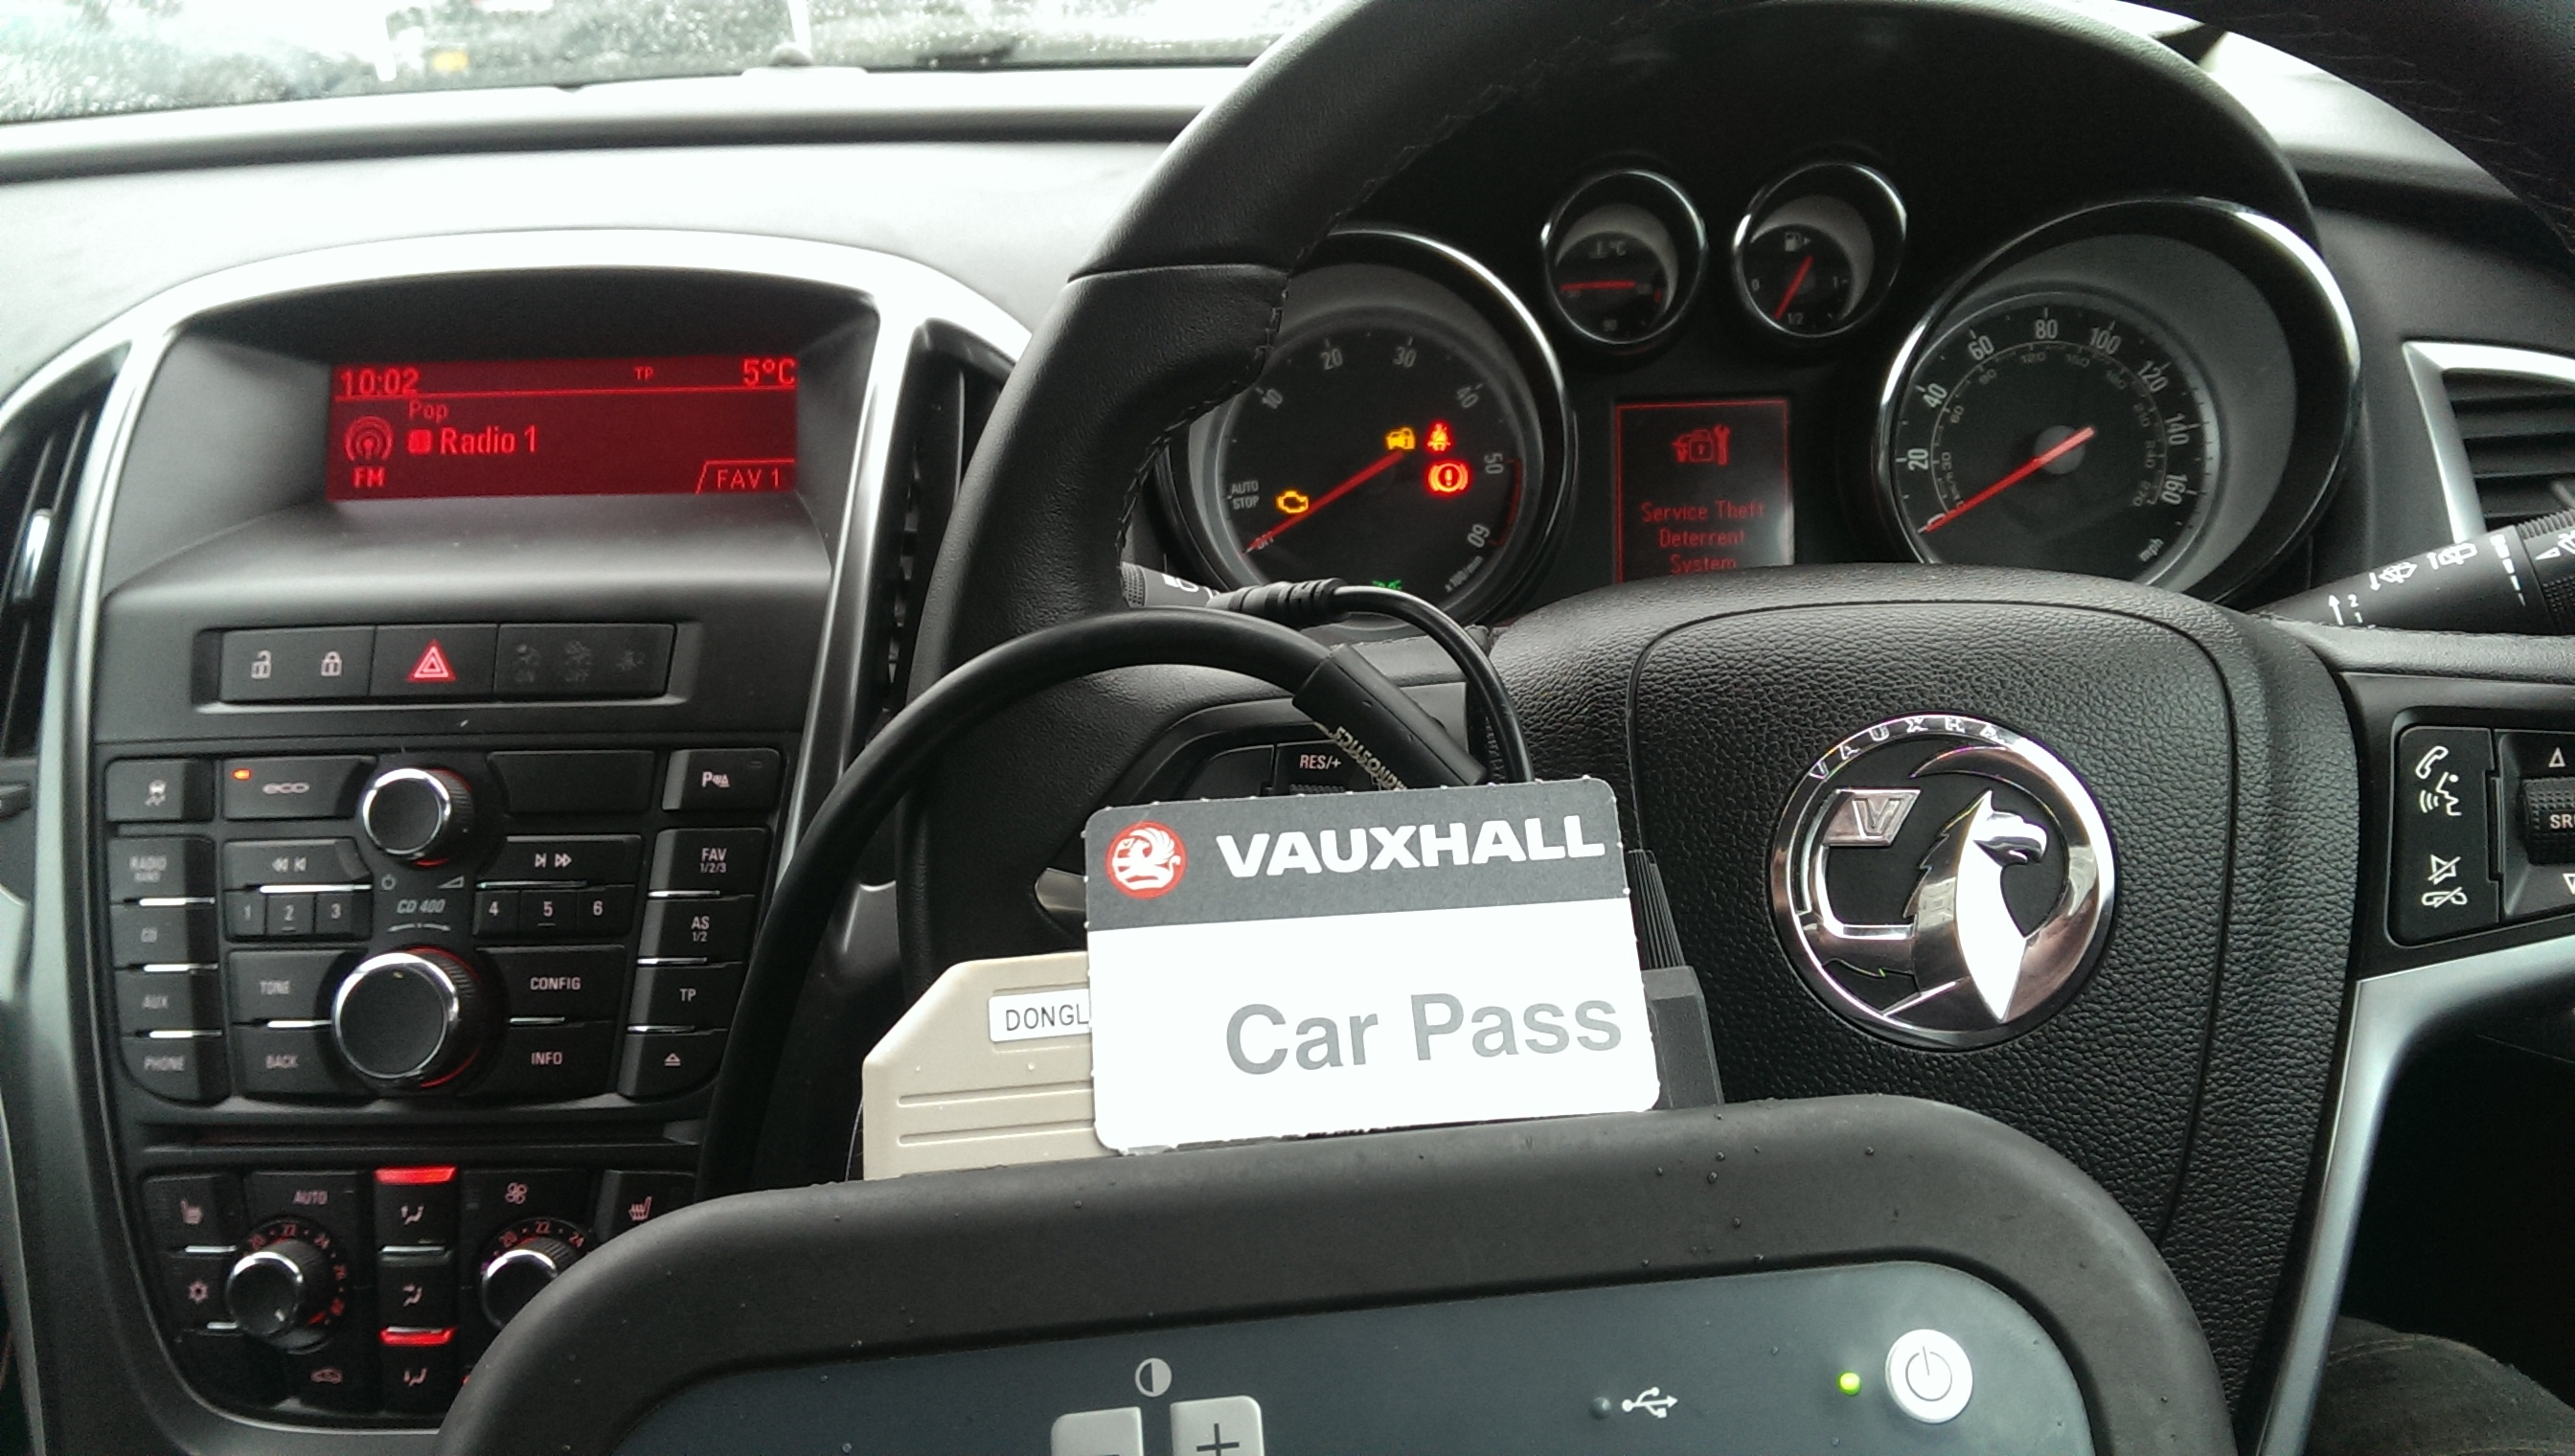 Vauxhall Car Key Replacement Including Astra Corsa